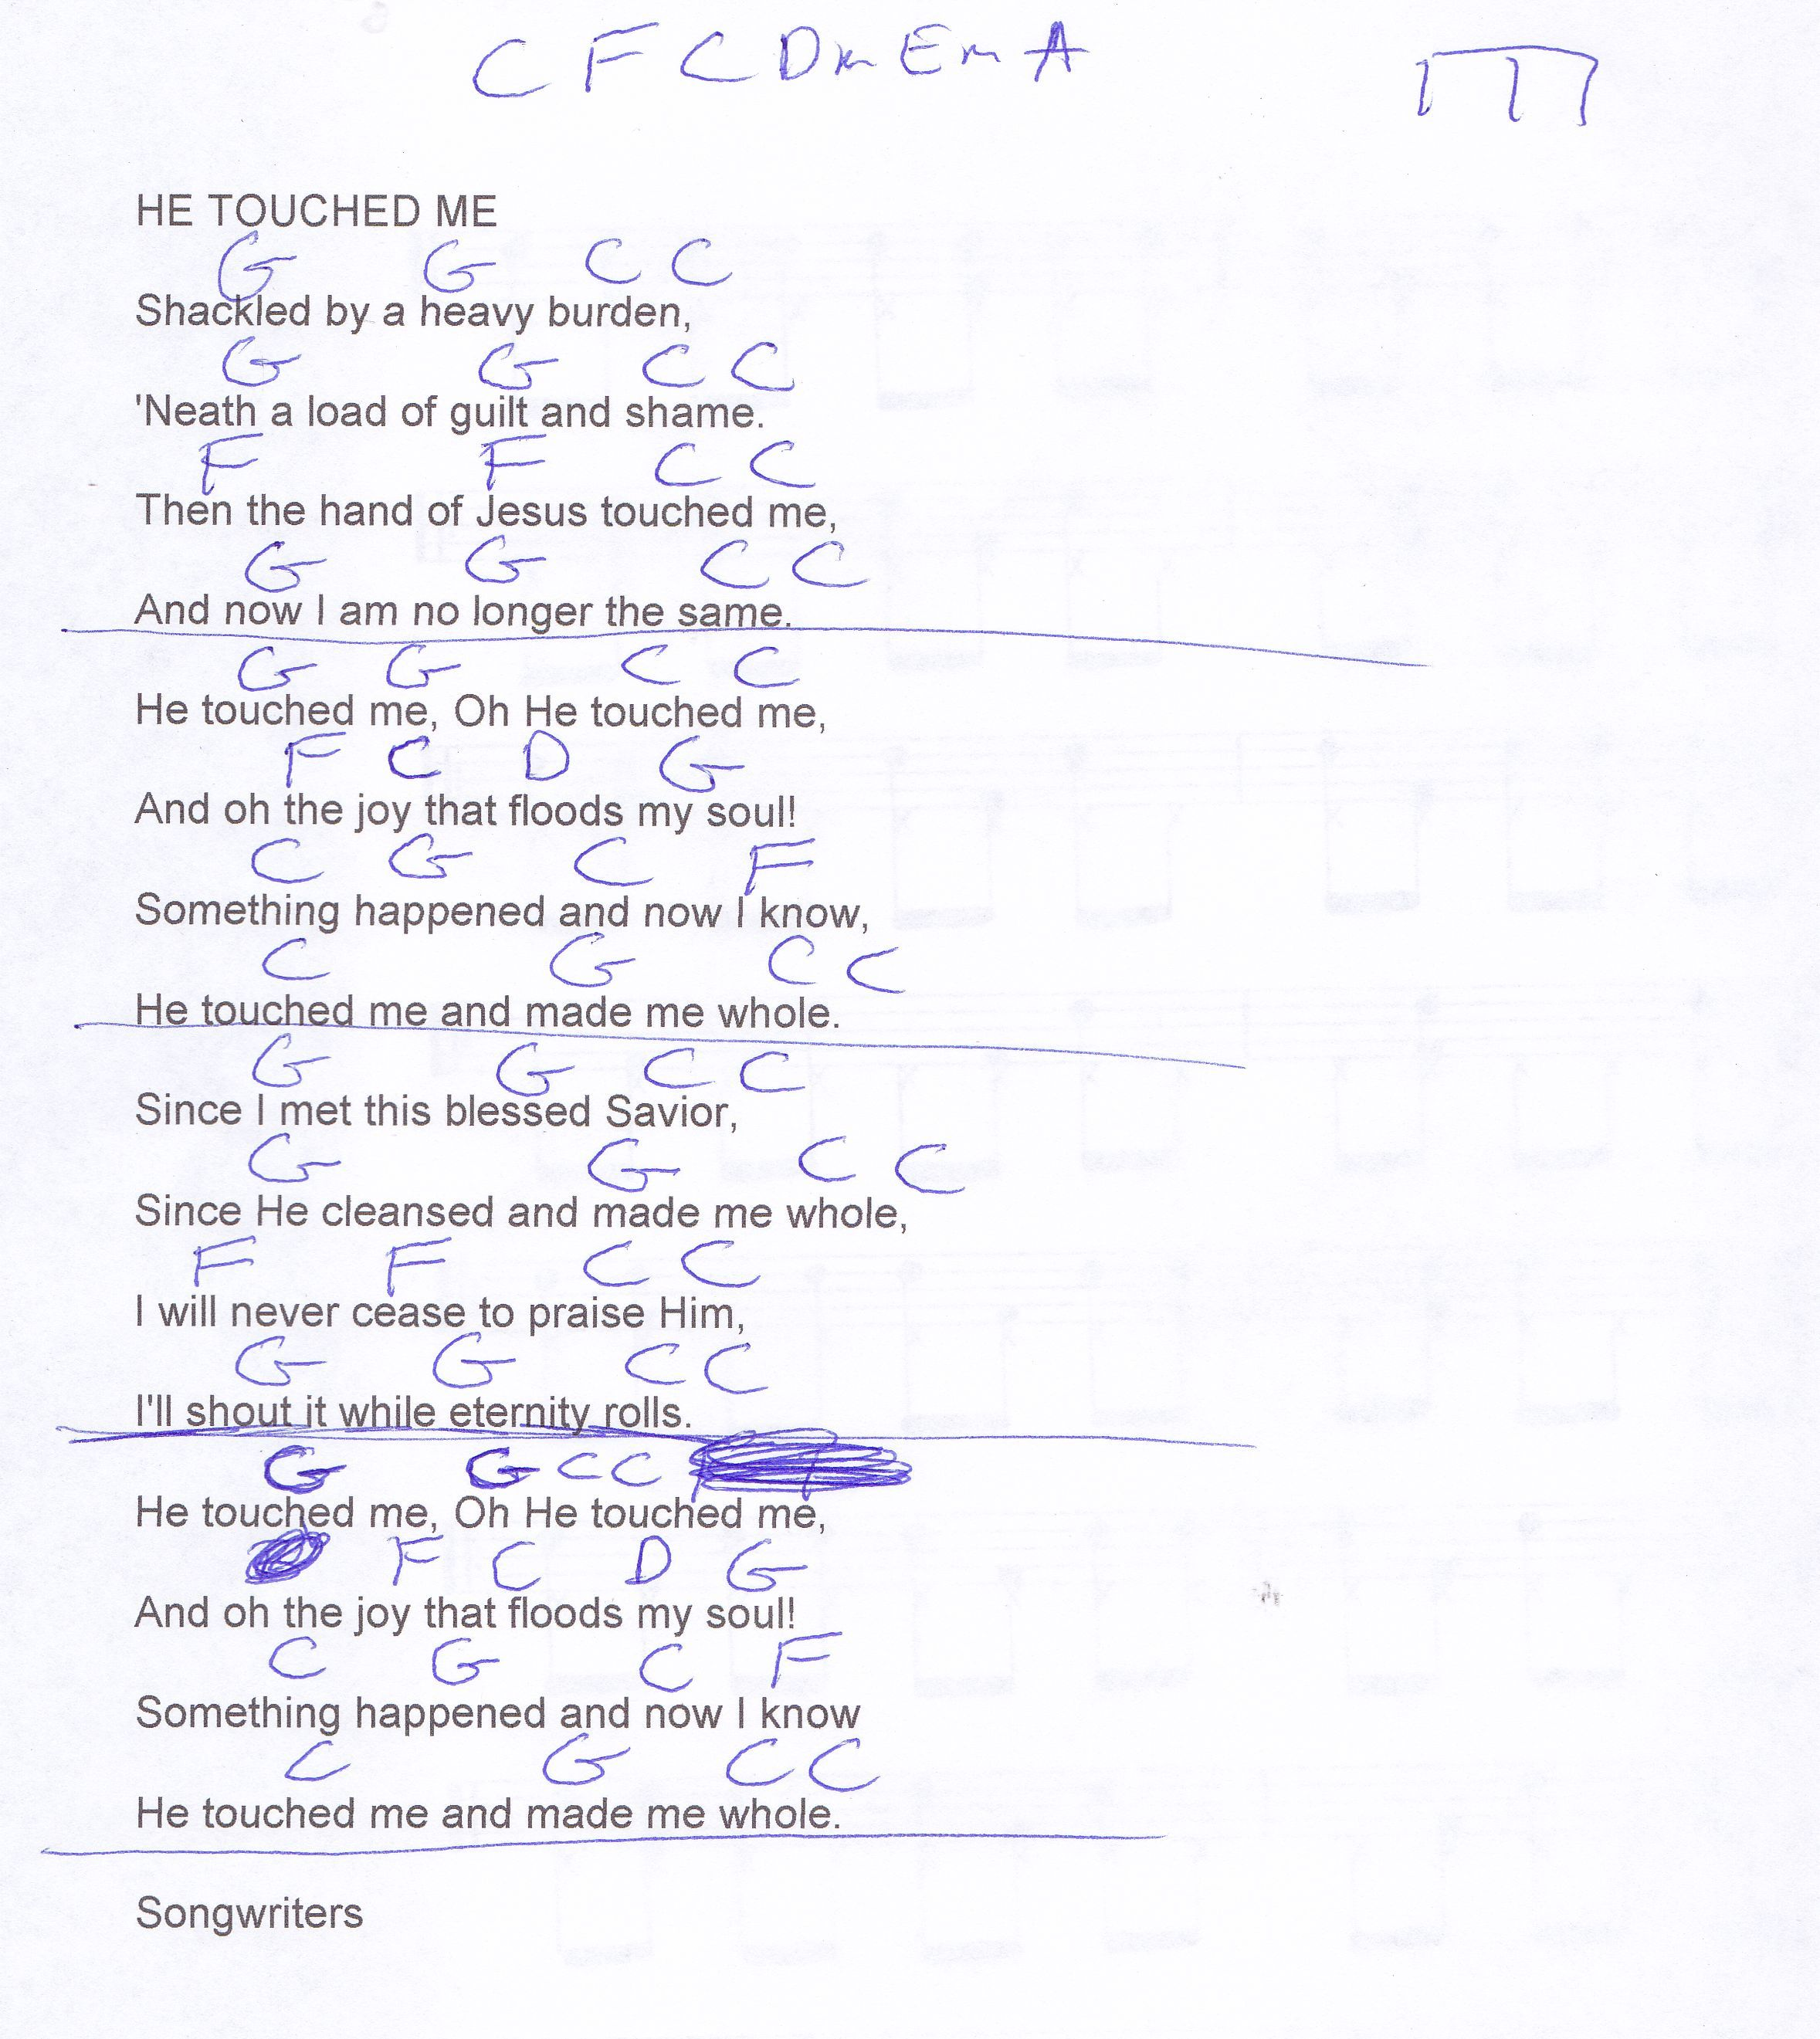 He touched me gaither guitar chord chart capo 5th live he touched me gaither guitar chord chart capo 5th live version hexwebz Image collections